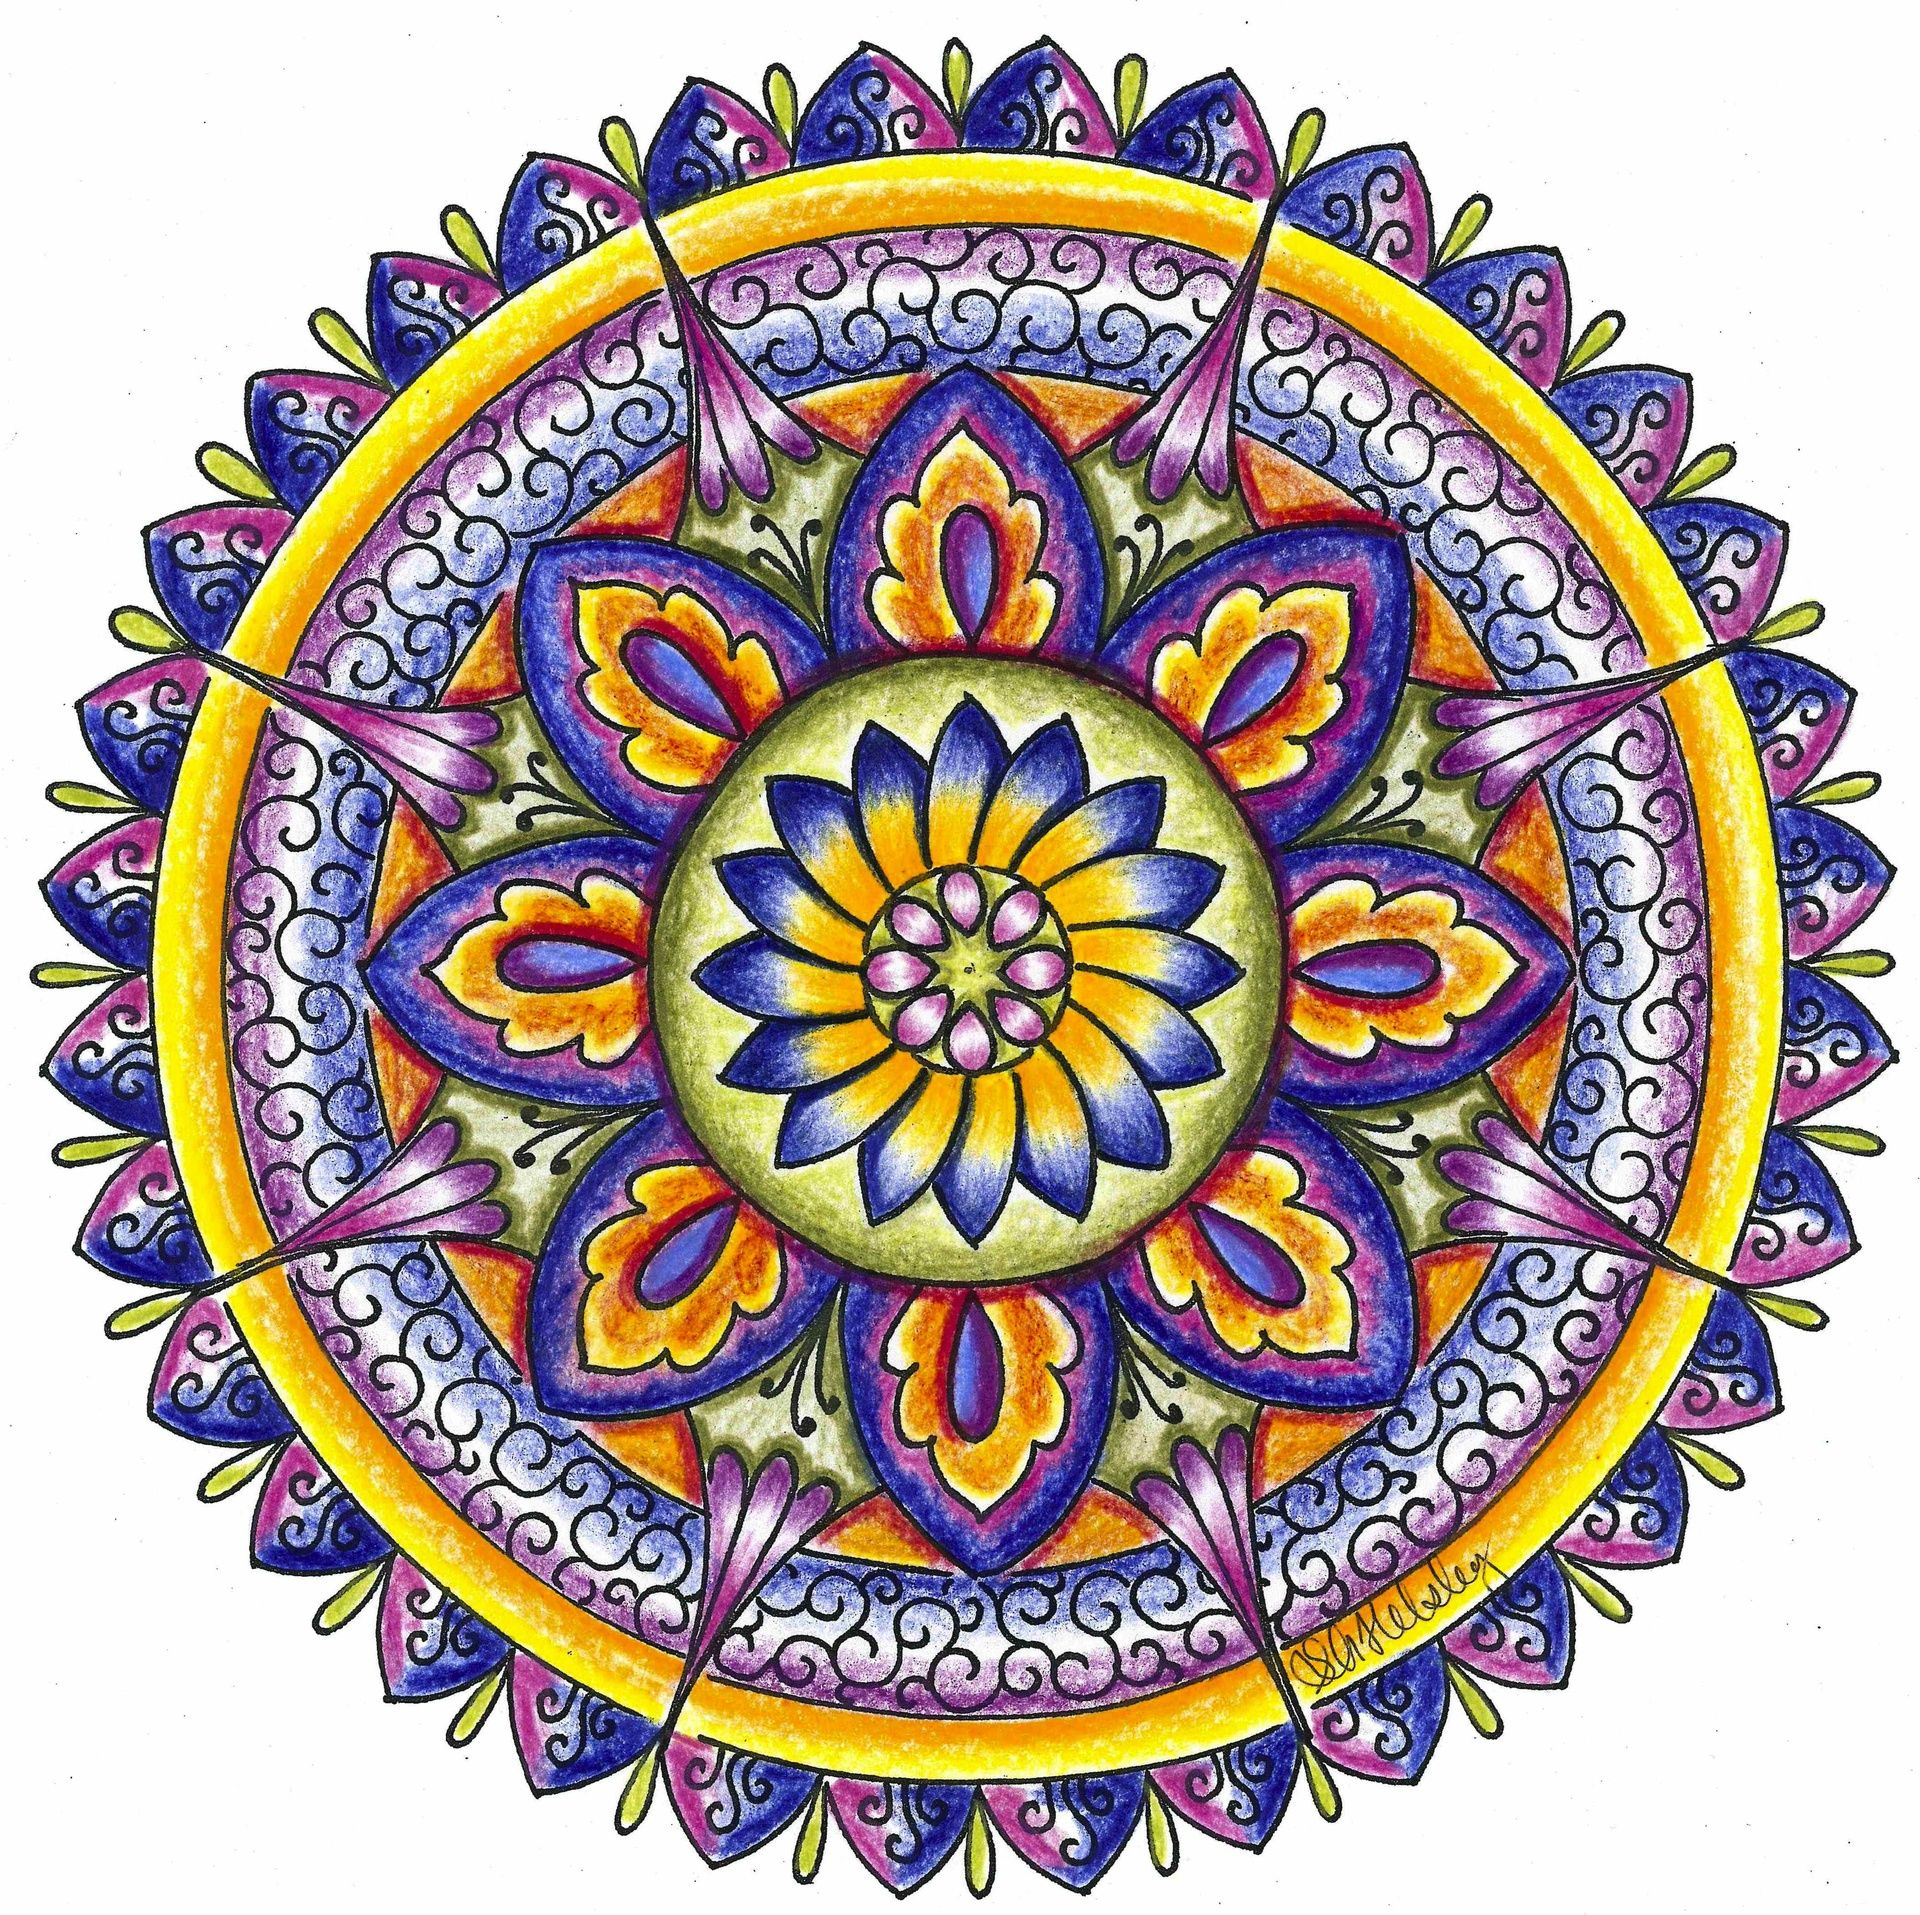 Colored mandalas google search mandalas pinterest mandalas google search and mandala - Mandalas signification formes ...